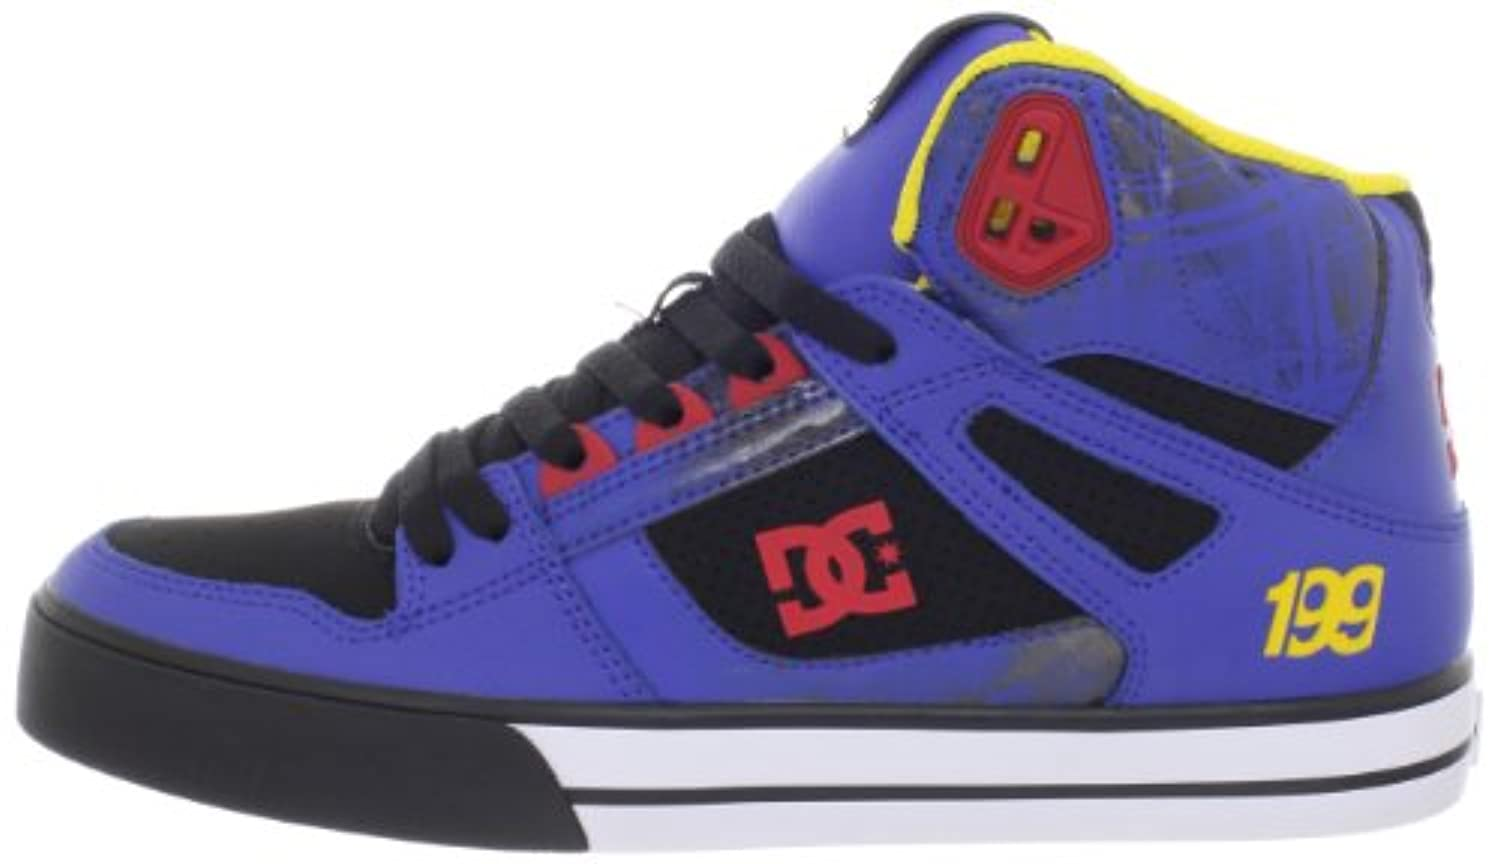 DC Men's Spartan Hi WC TP Sneaker,Black/Royal,10 M US